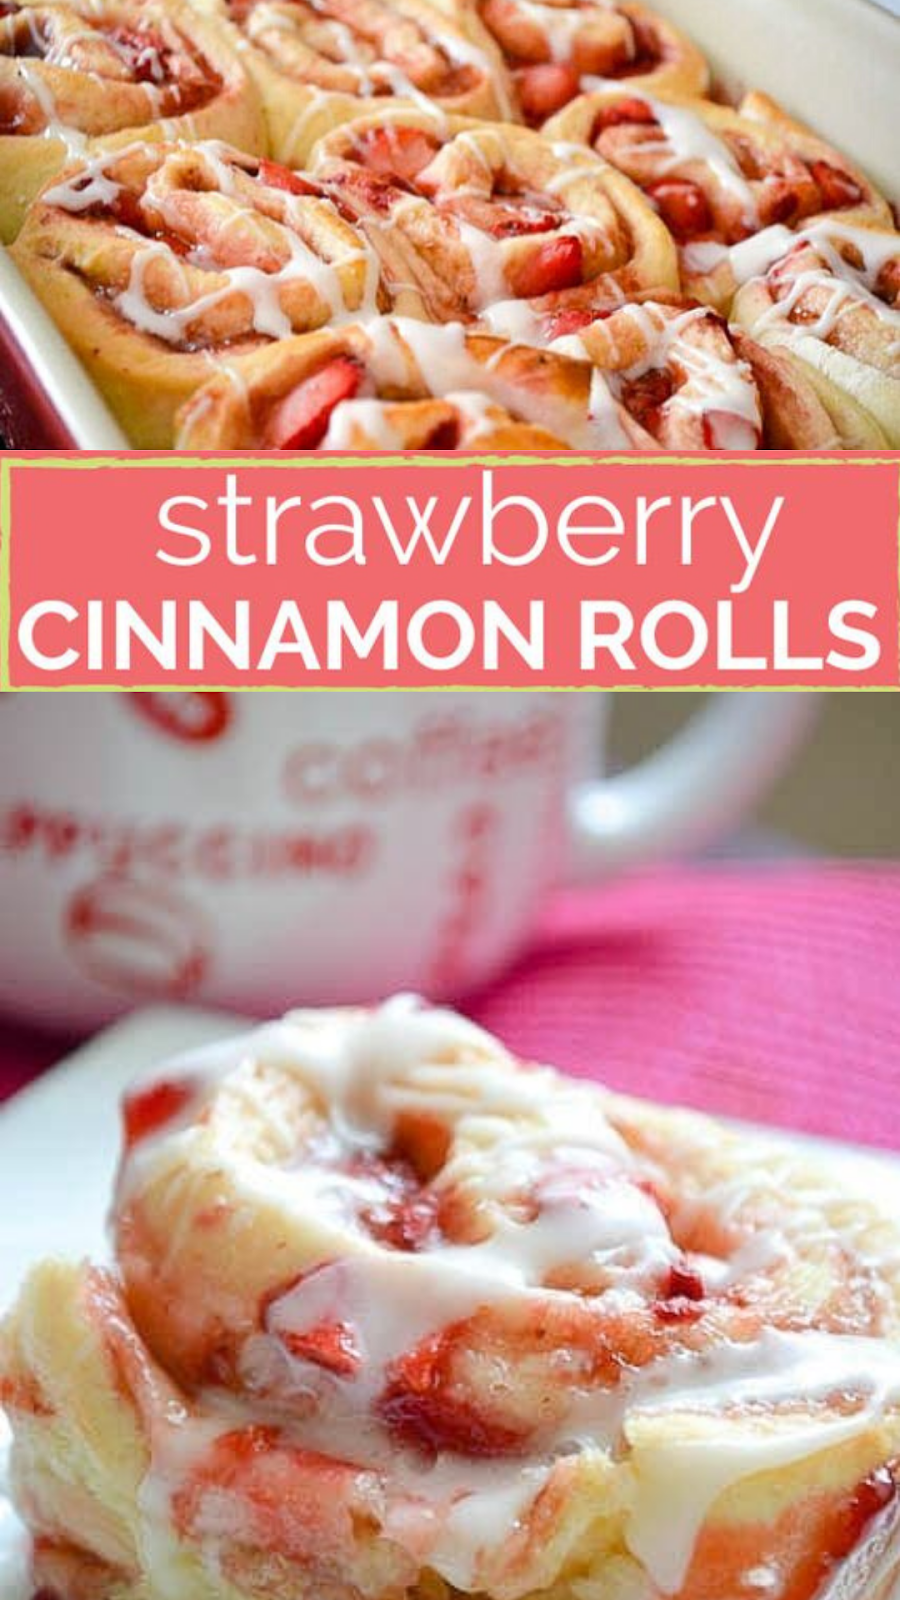 Strawberry Cinnamon Rolls Recipe